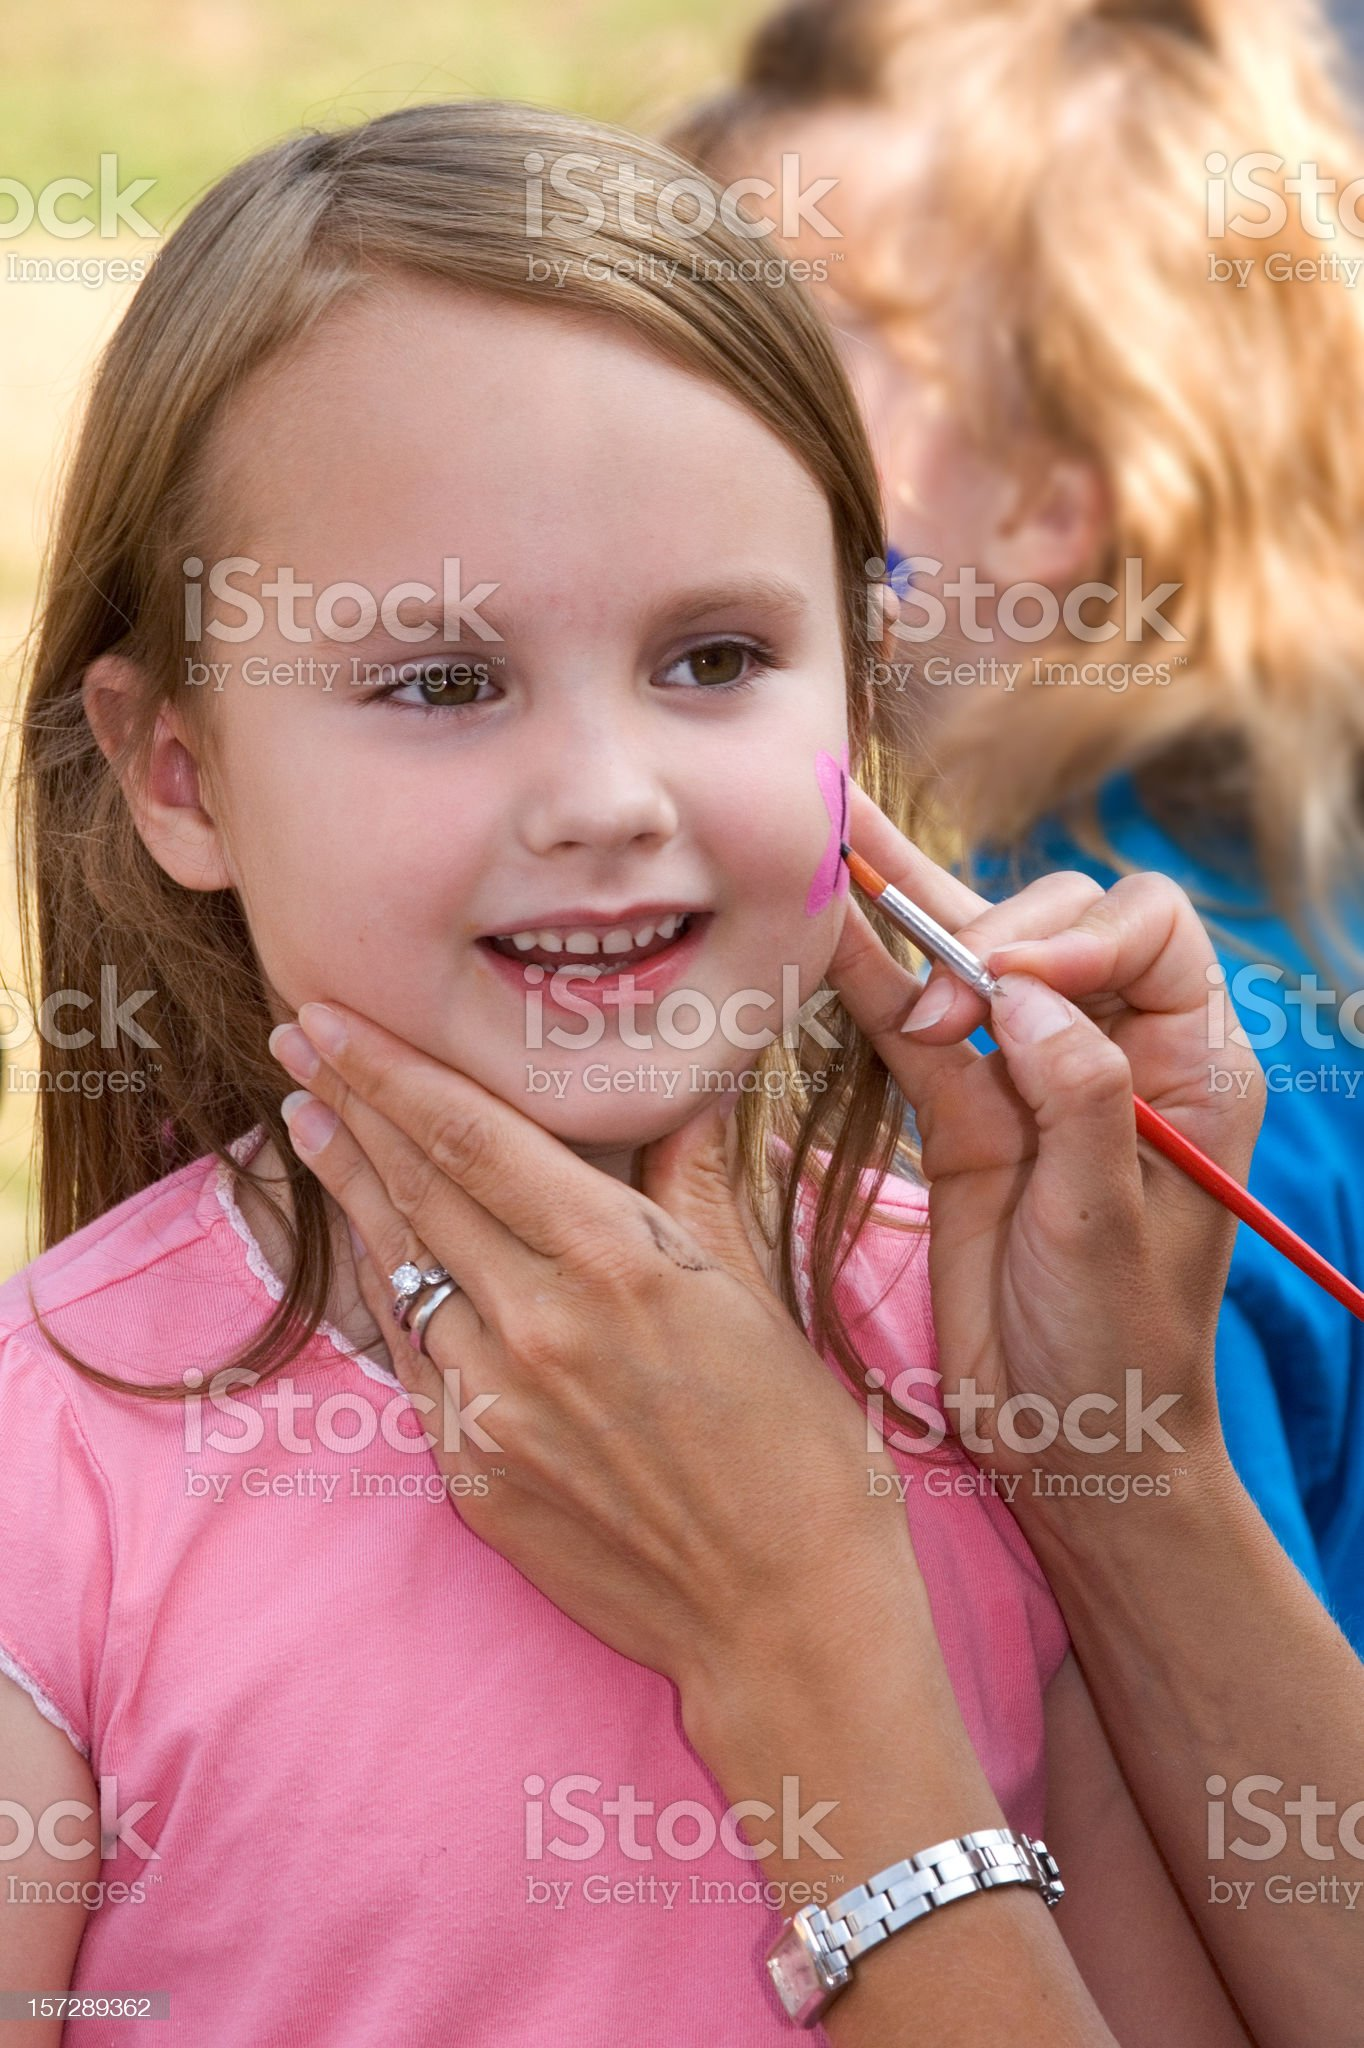 Face Painting Girl royalty-free stock photo